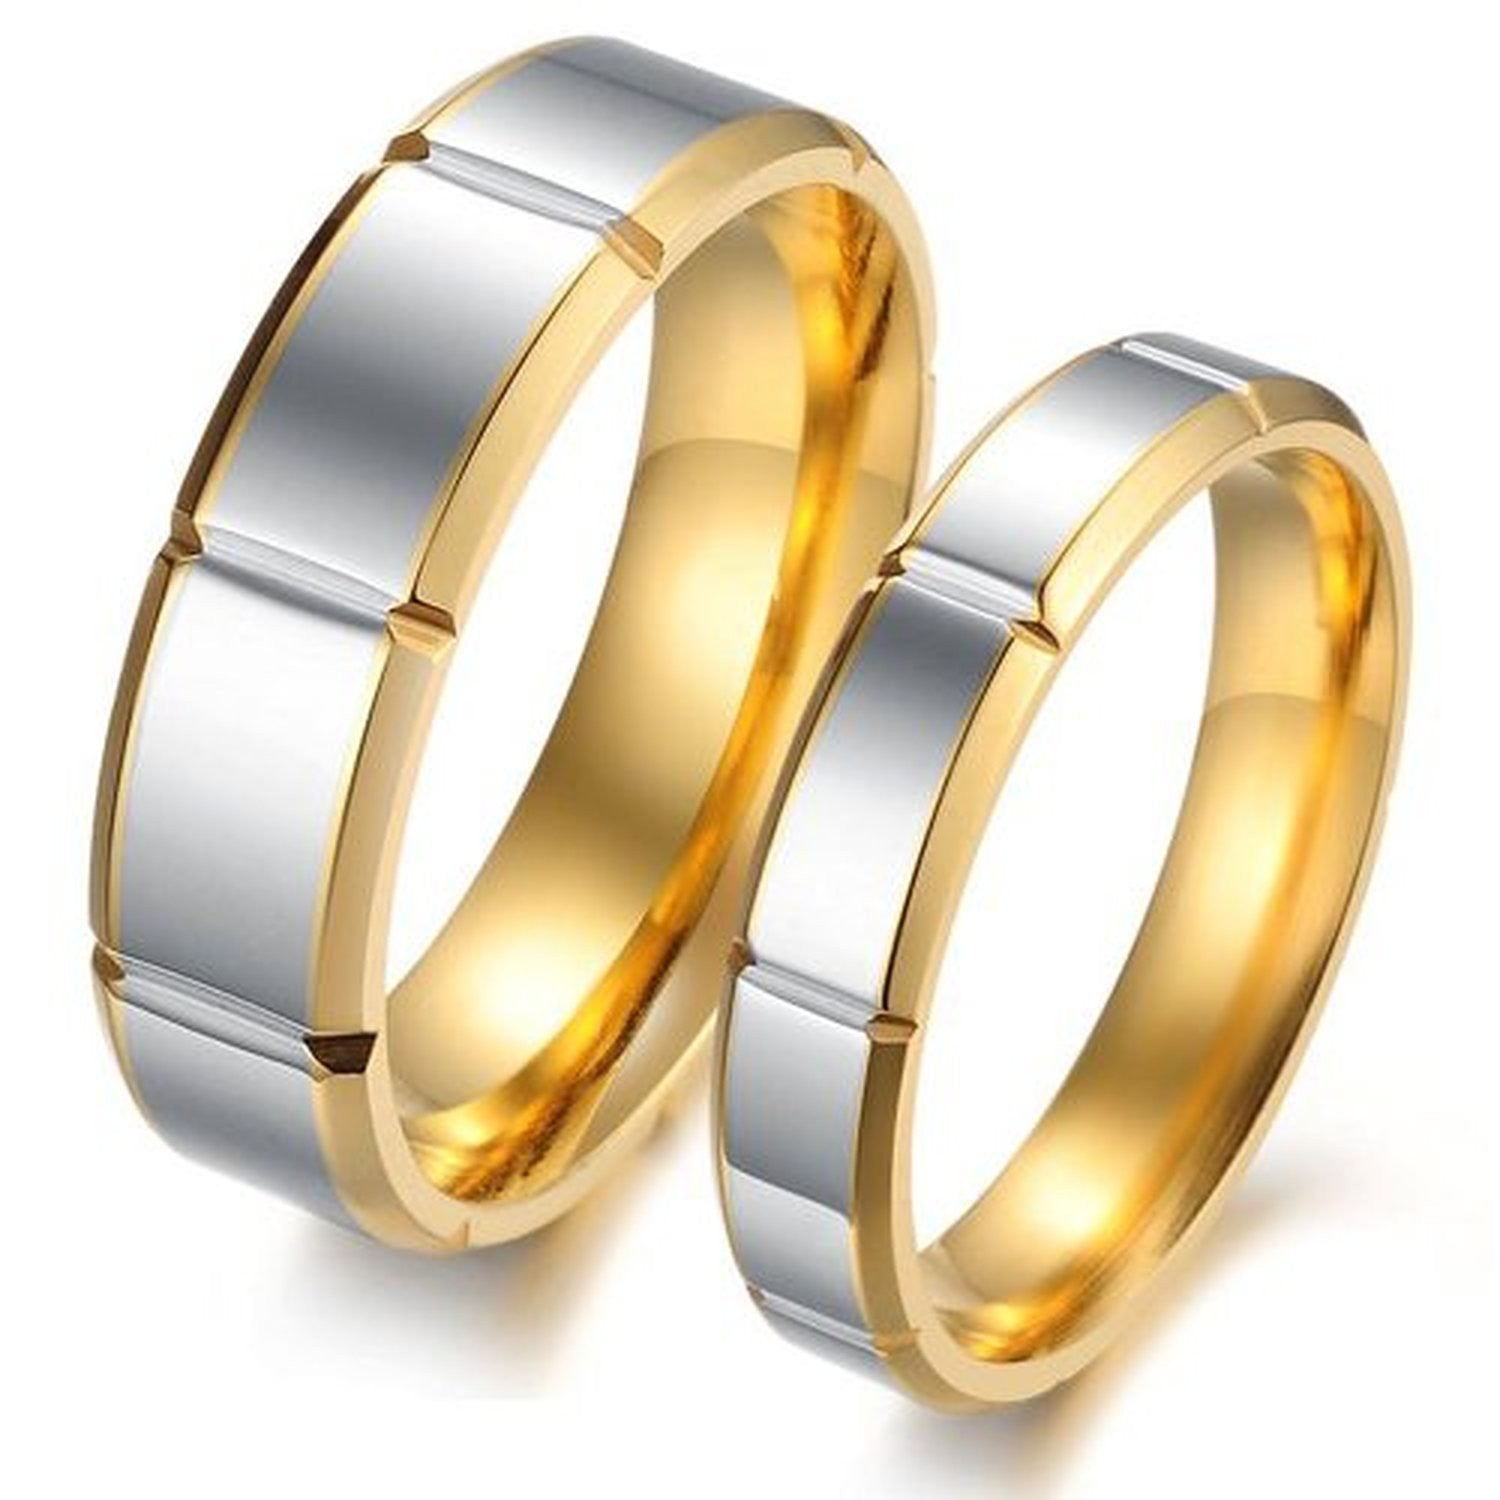 couple free get letters com new wedding w stainless a wholesale rings engagement ring shipping his king steel buy on of her romantic set aliexpress queen and